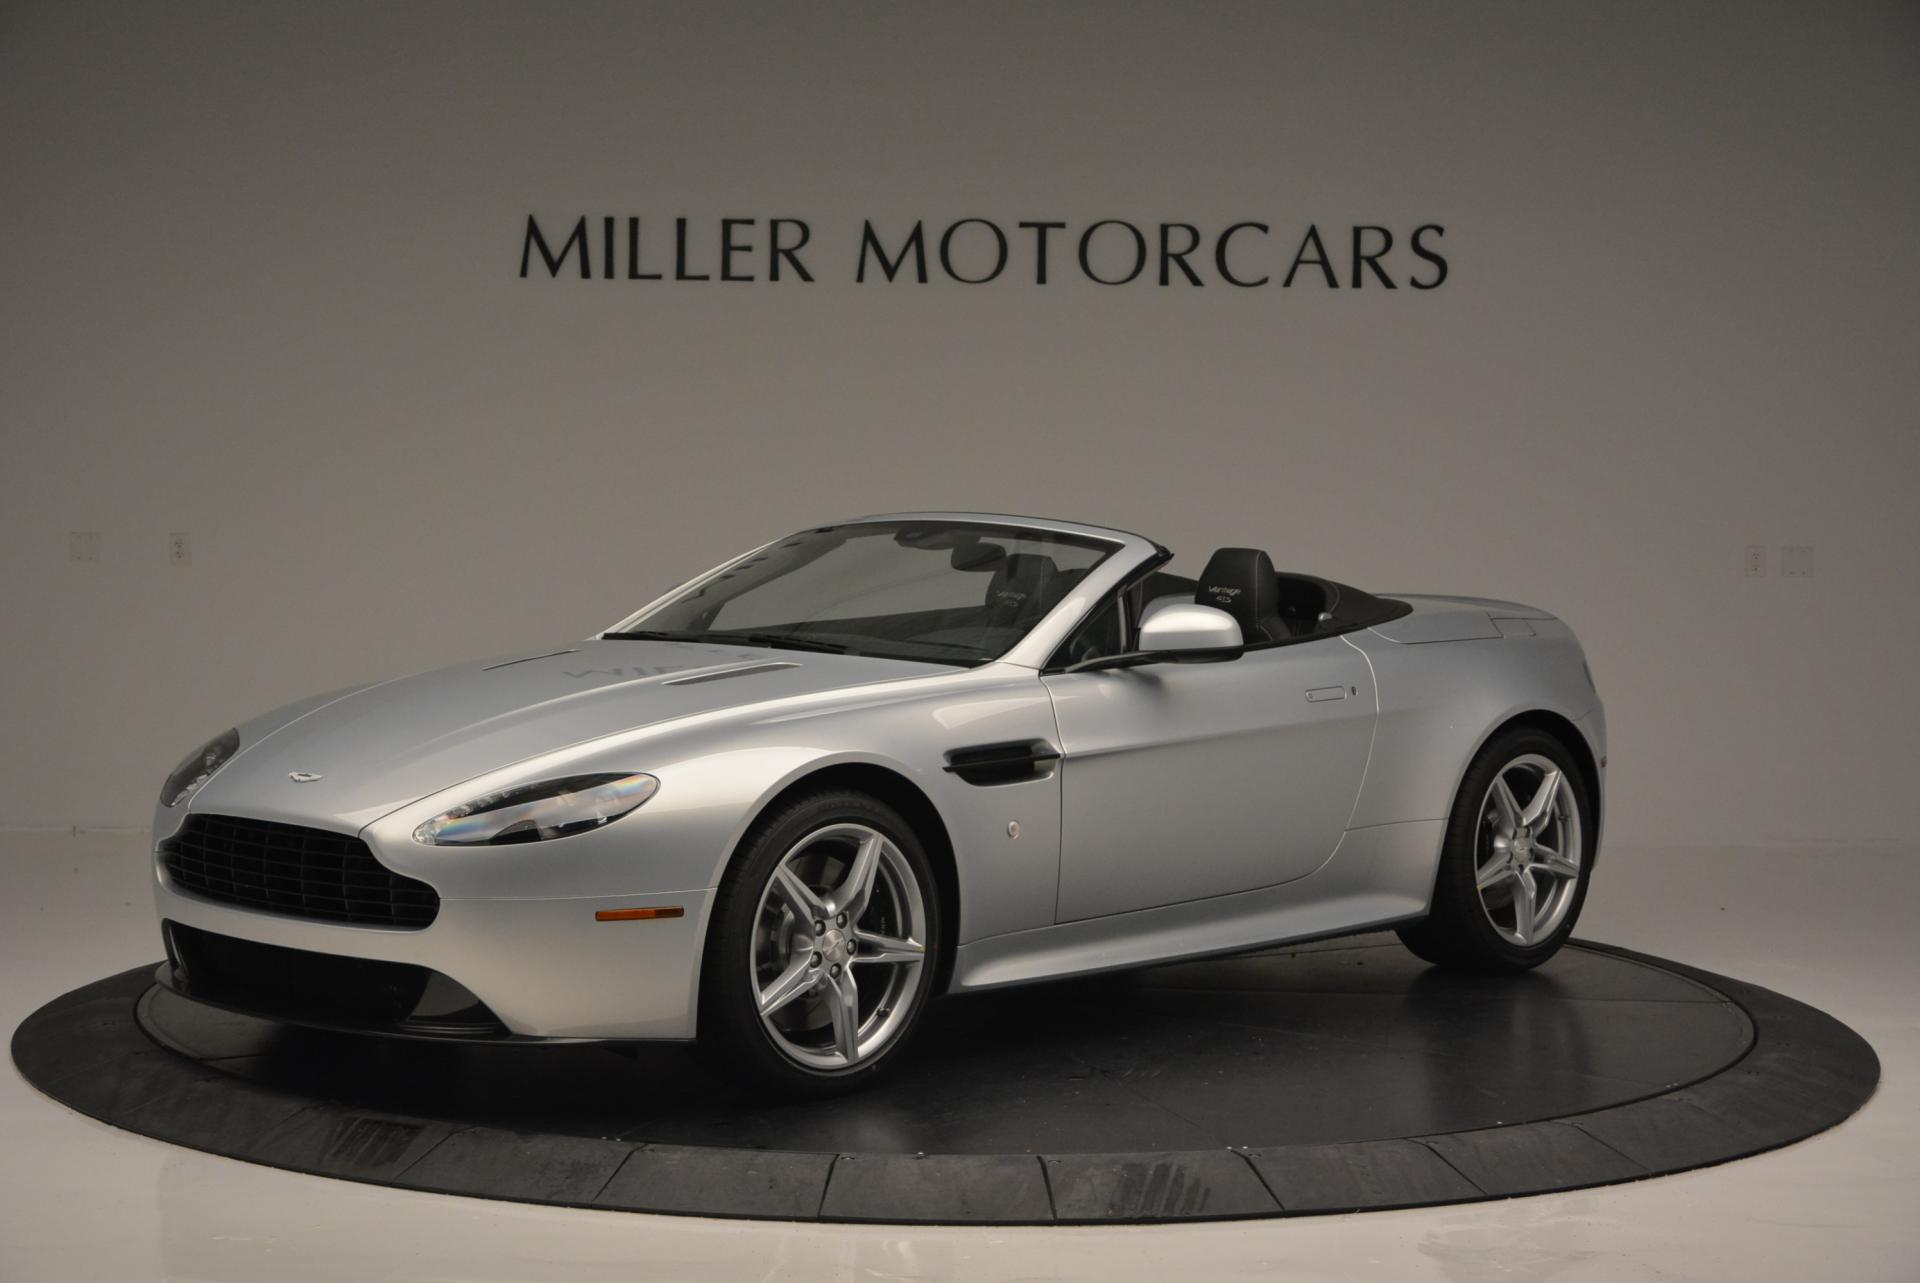 New 2016 Aston Martin V8 Vantage GTS Roadster For Sale In Westport, CT 90_p2